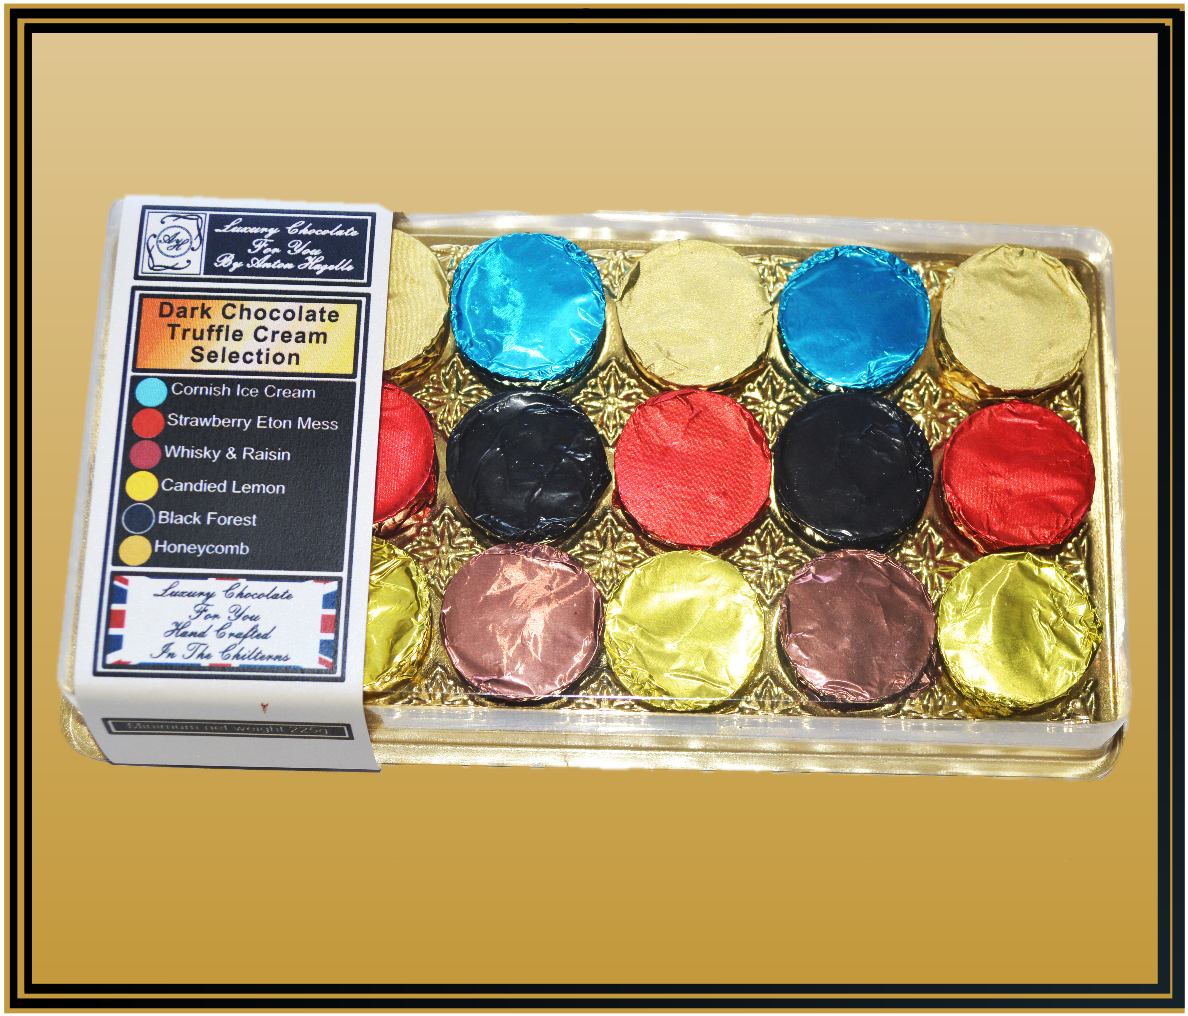 18 Dark Truffle Cream Selection Luxury Chocolates